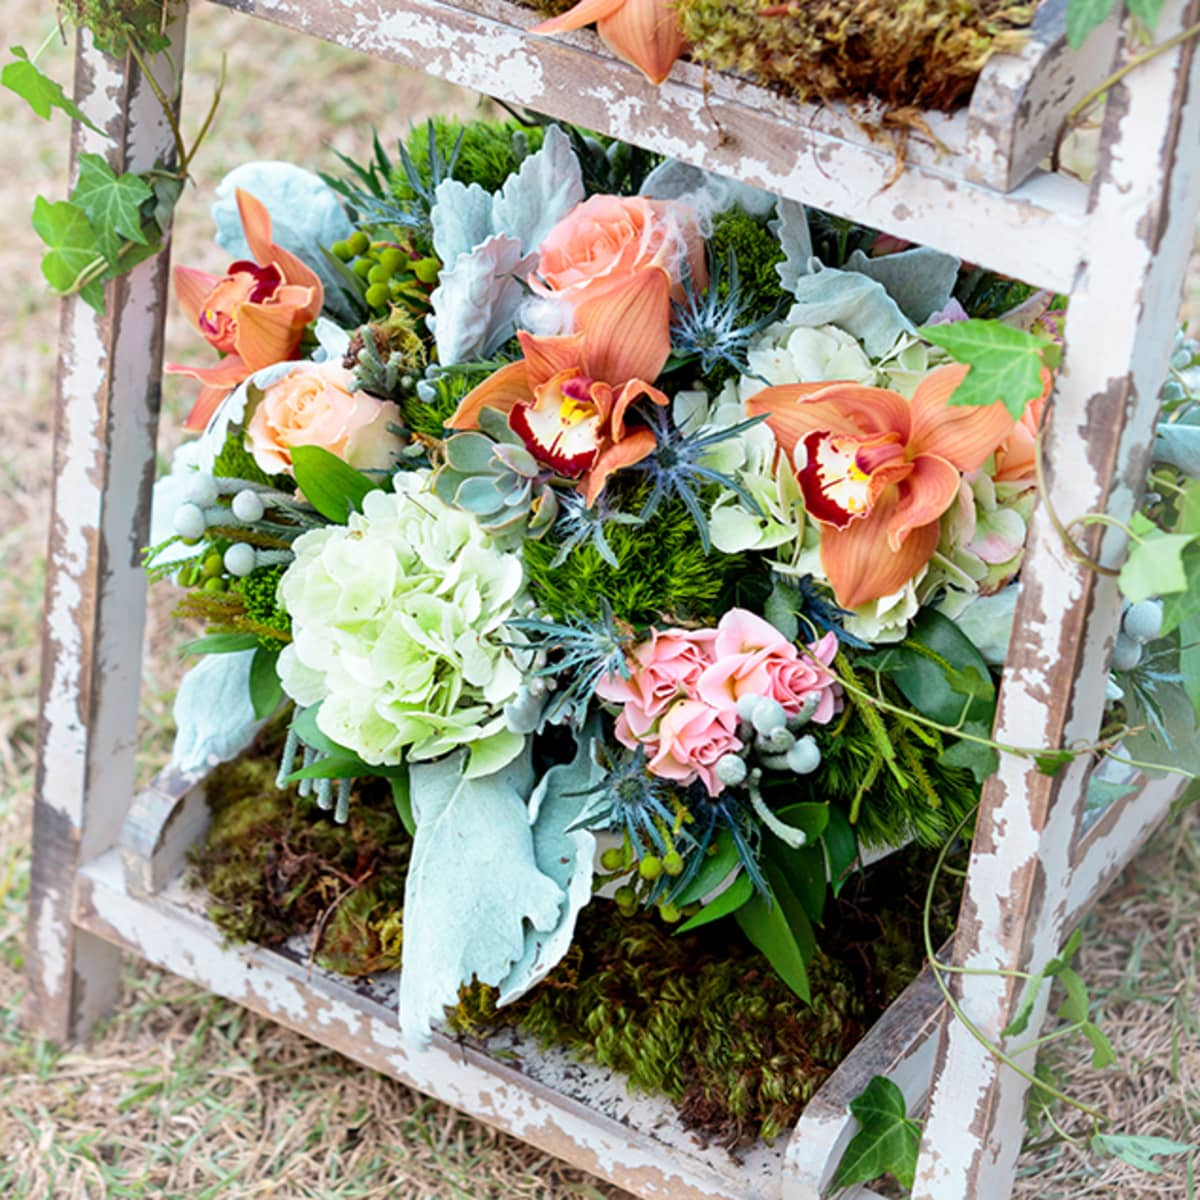 Rustic Floral Arrangements Complement The Sophisticated Southern Theme